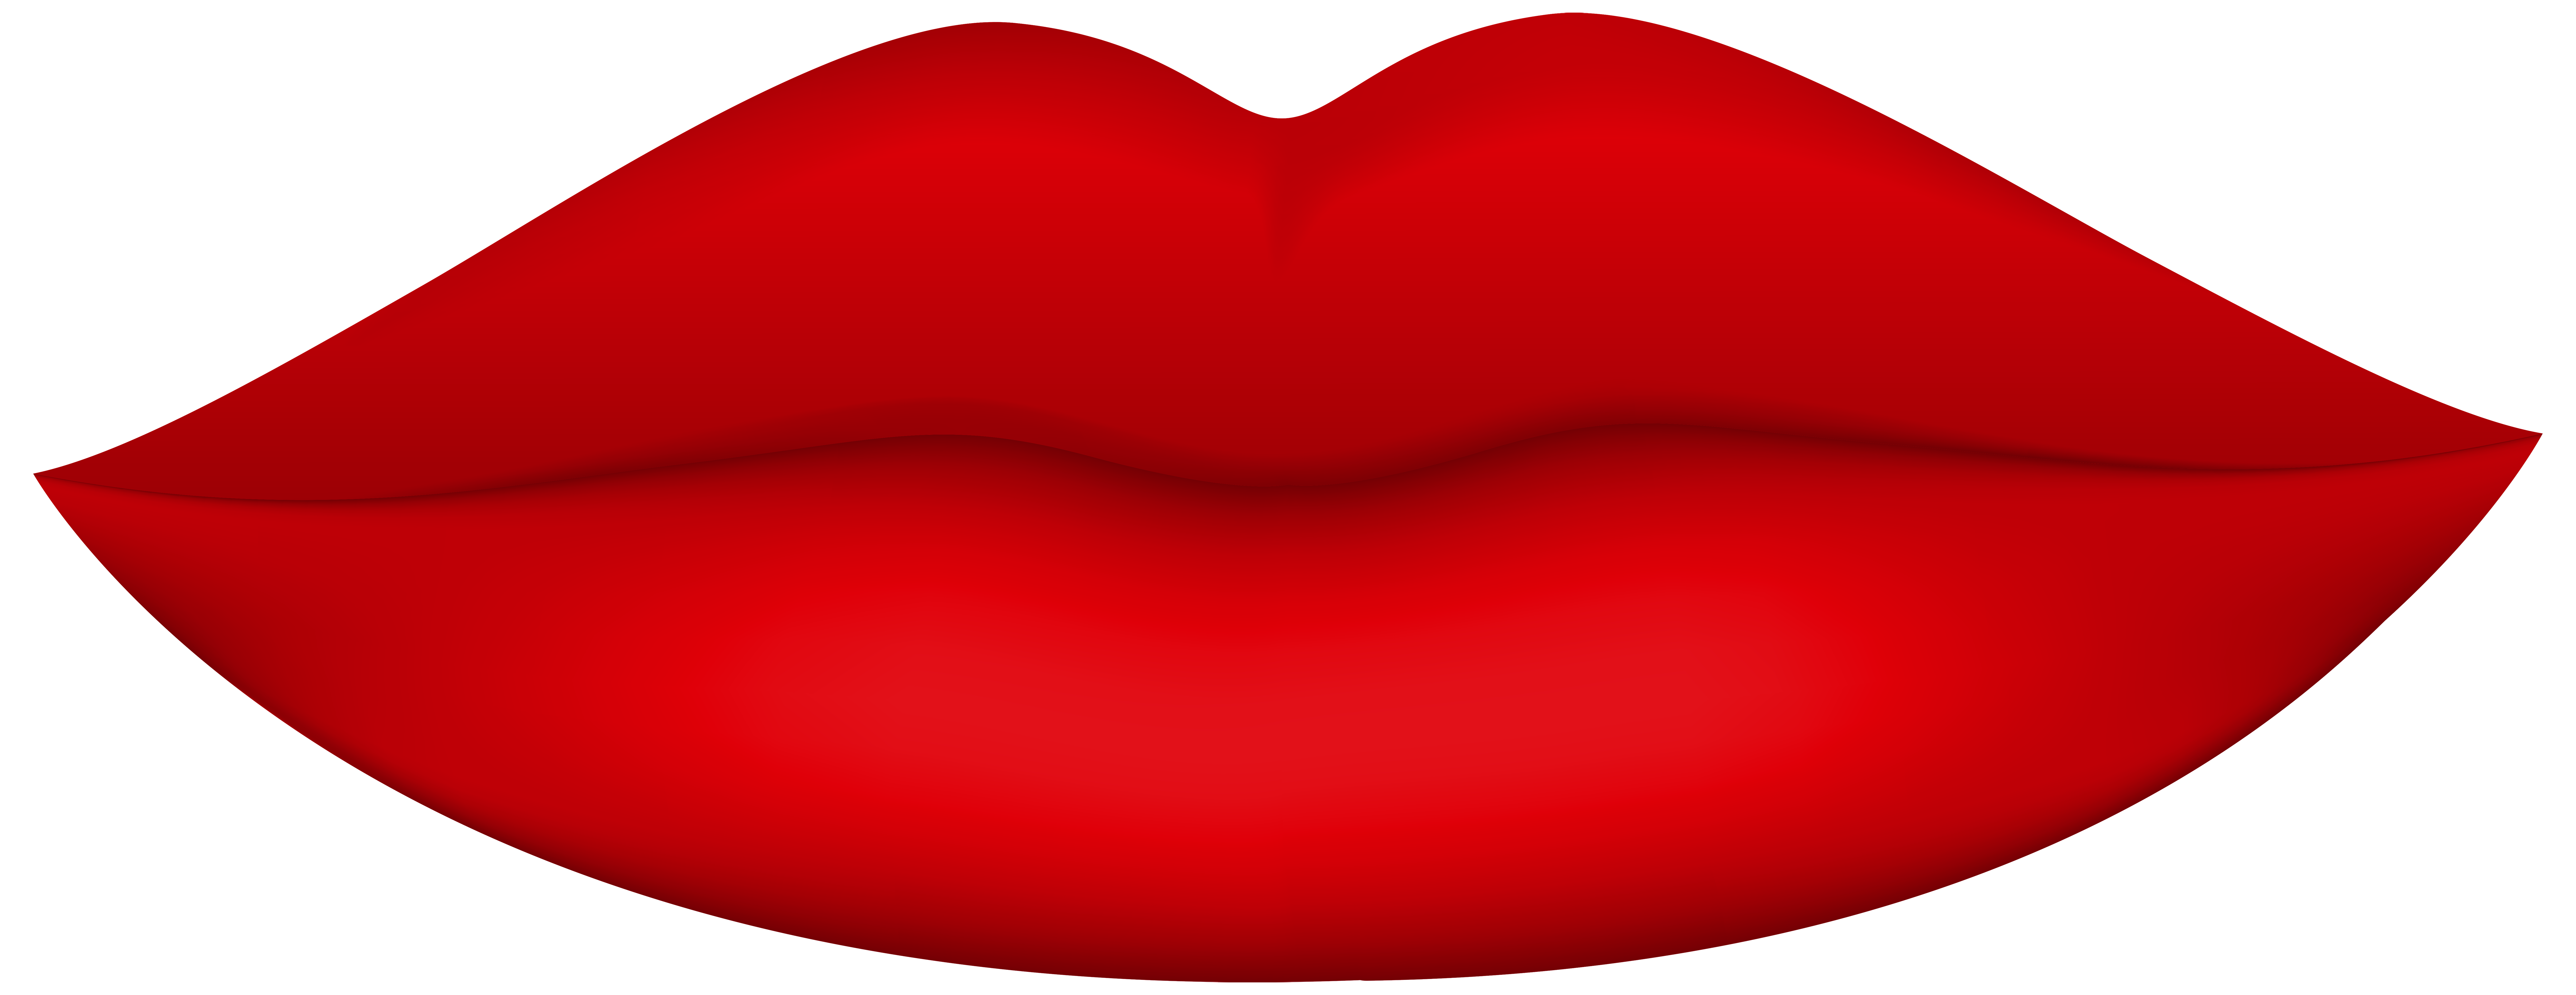 Clipart woman mouth. Red lips png clip